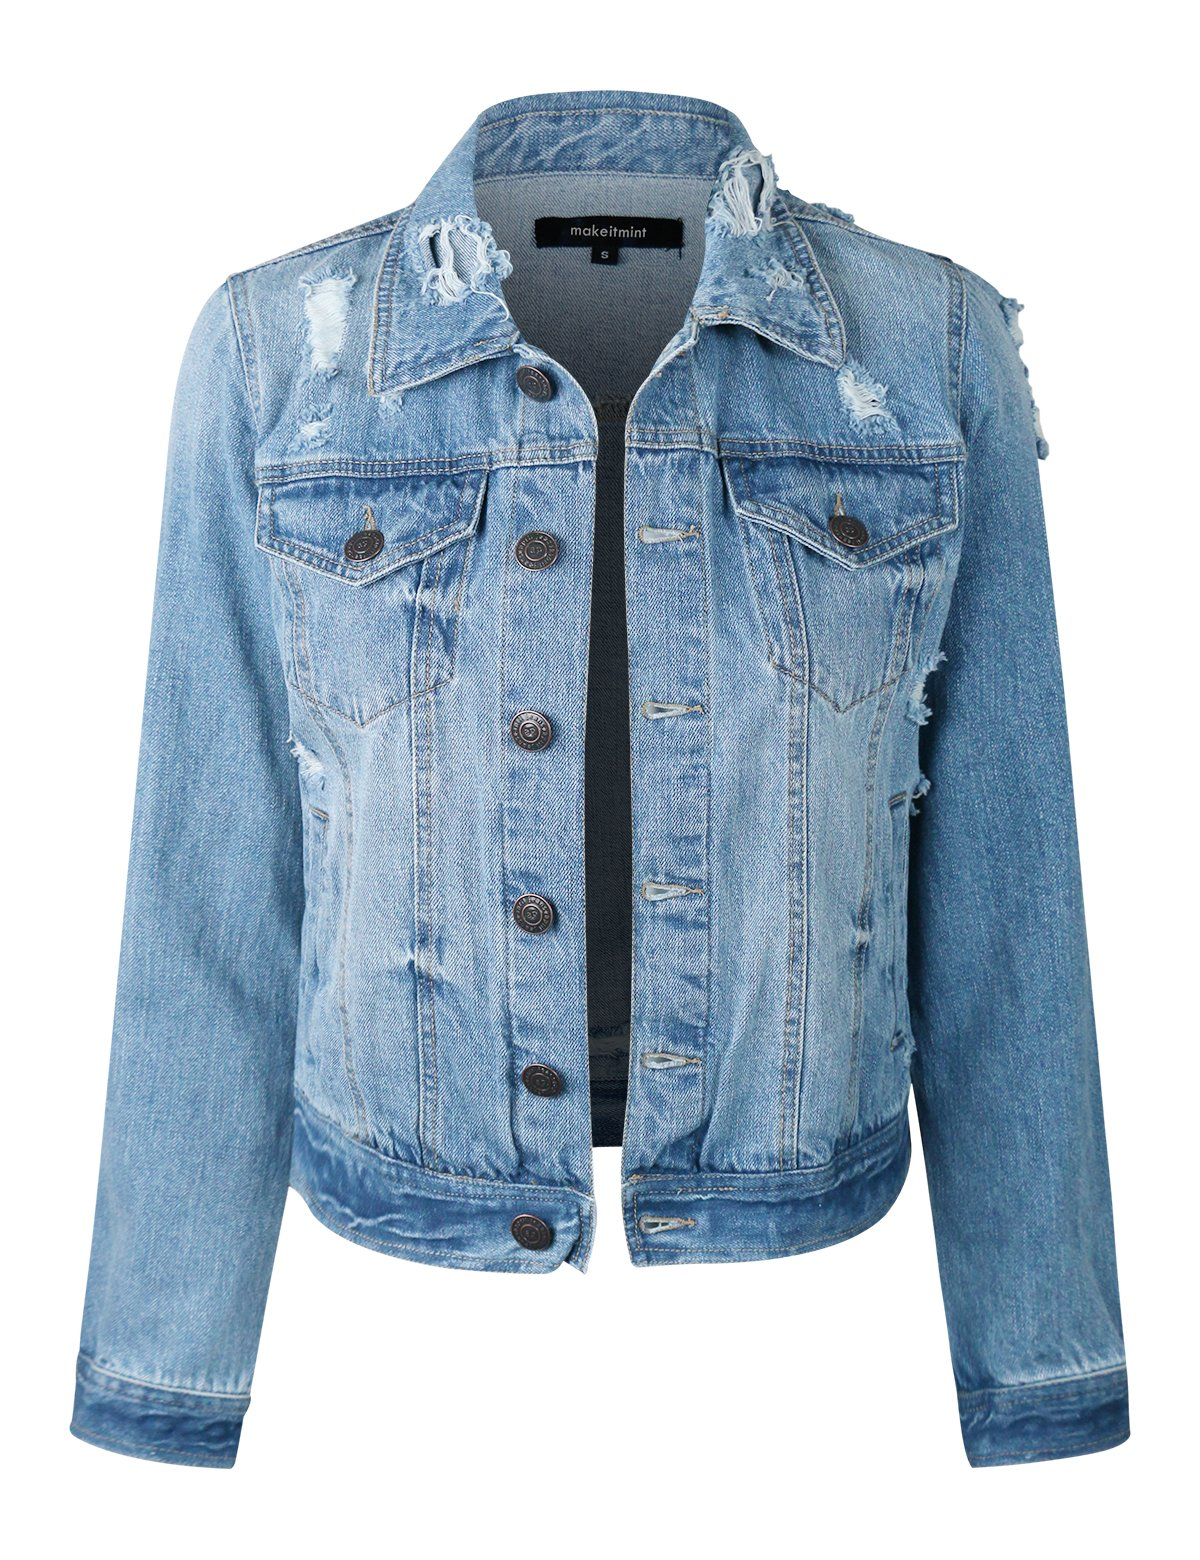 makeitmint Women's Casual Distressed Washed Boyfriend Look Style Denim Jacket YJD0004-LIGHT-LRG